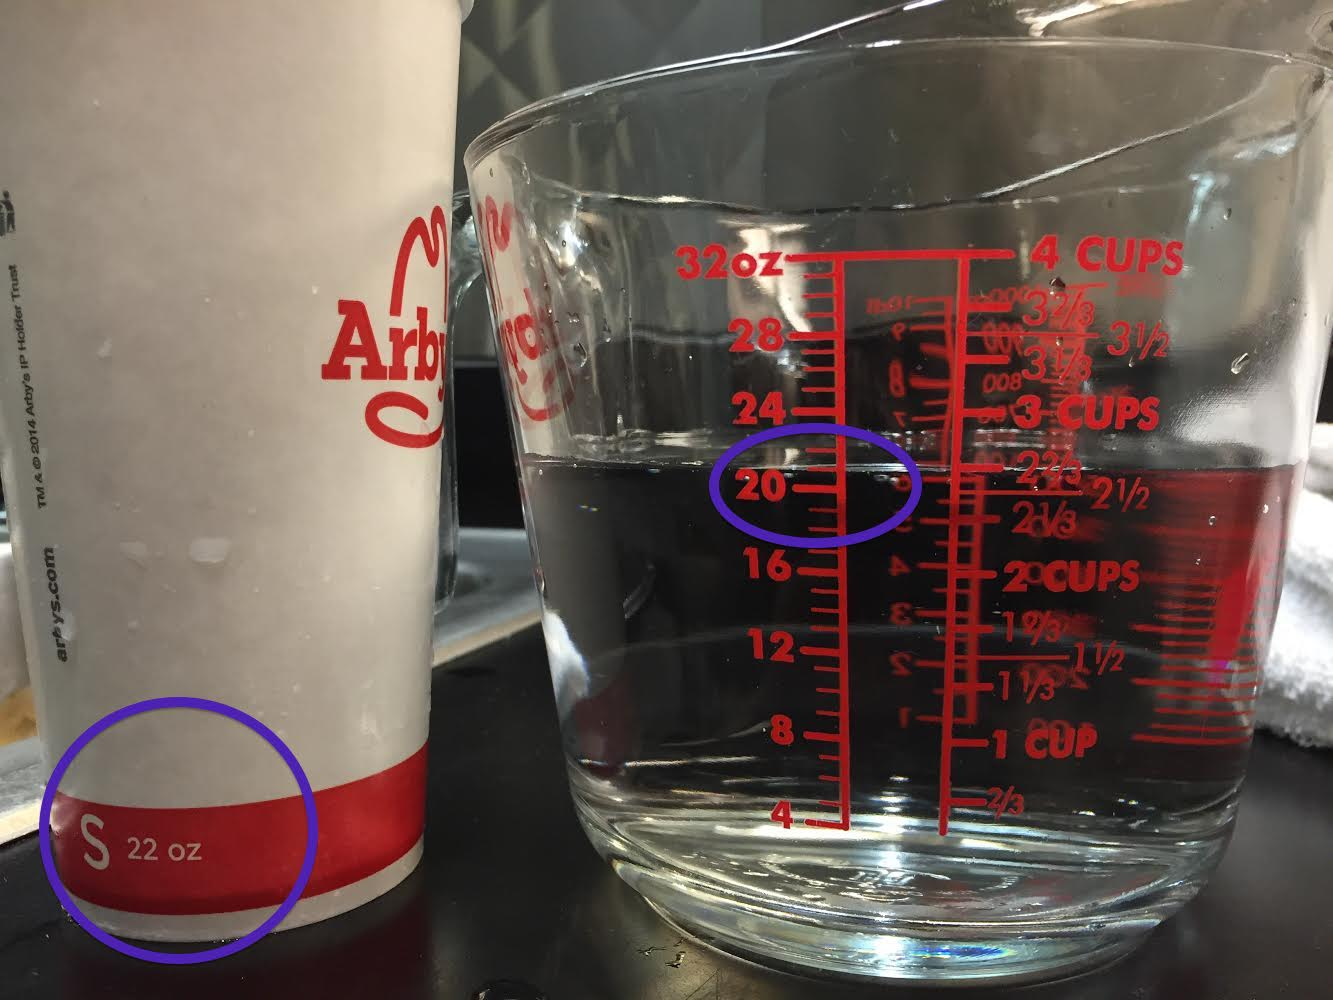 "Consumerist reader Michael noticed that his ""22 oz."" Arby's cup only holds 21 ounces of liquid. A quick look at the underside of the cup (see below) confirms that this cup can't possibly hold the amount of liquid advertised."